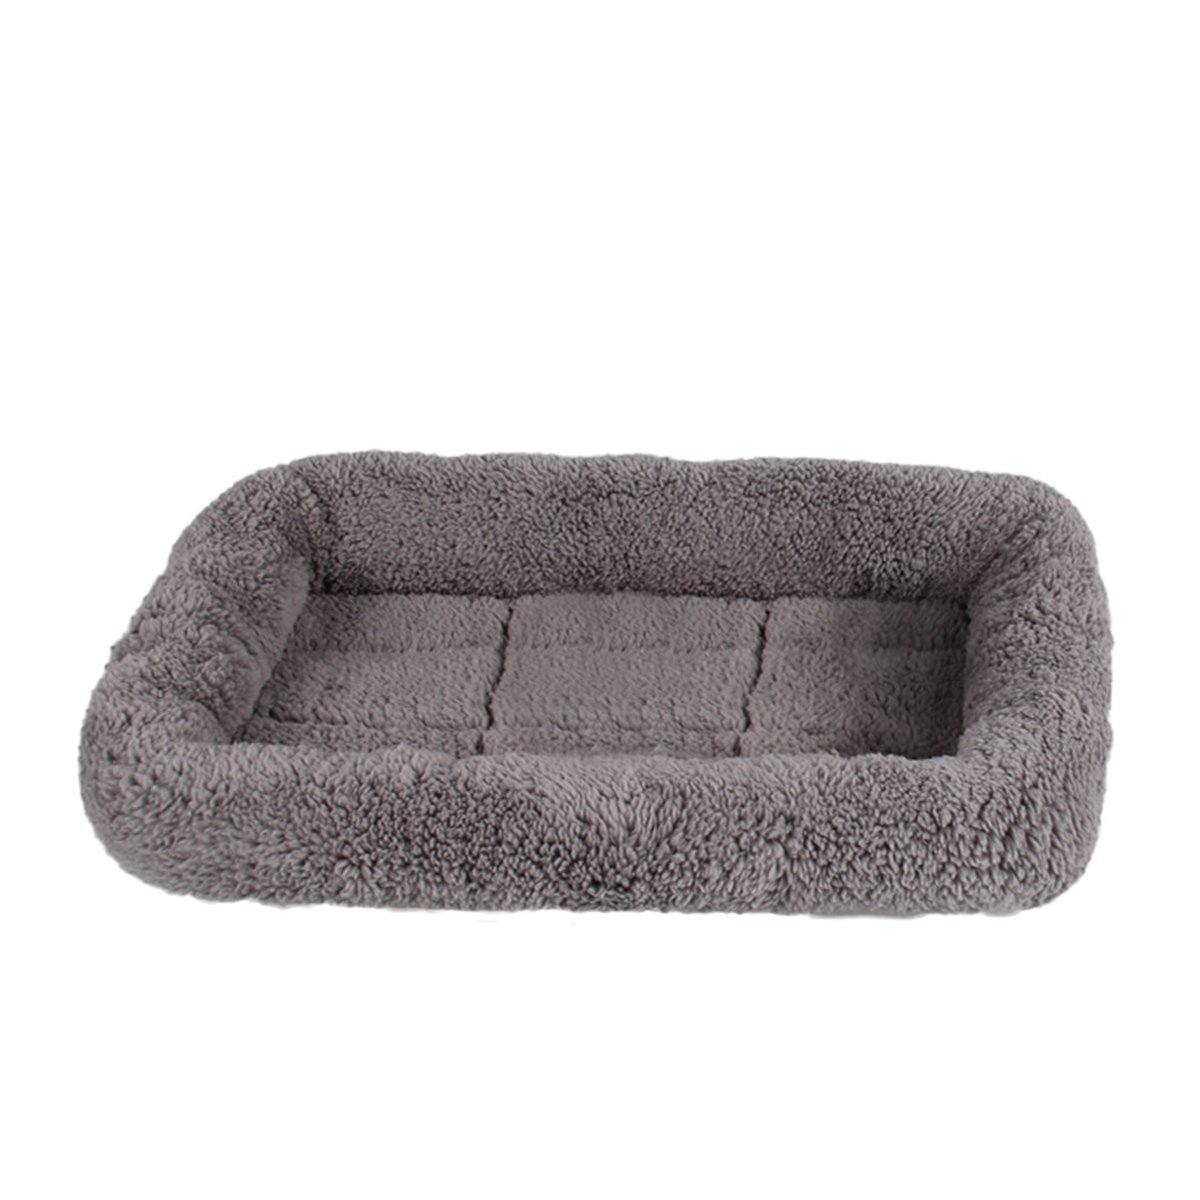 LESYPET Small Dog Crate Cotton Washable Mat Small by LESYPET (Image #1)